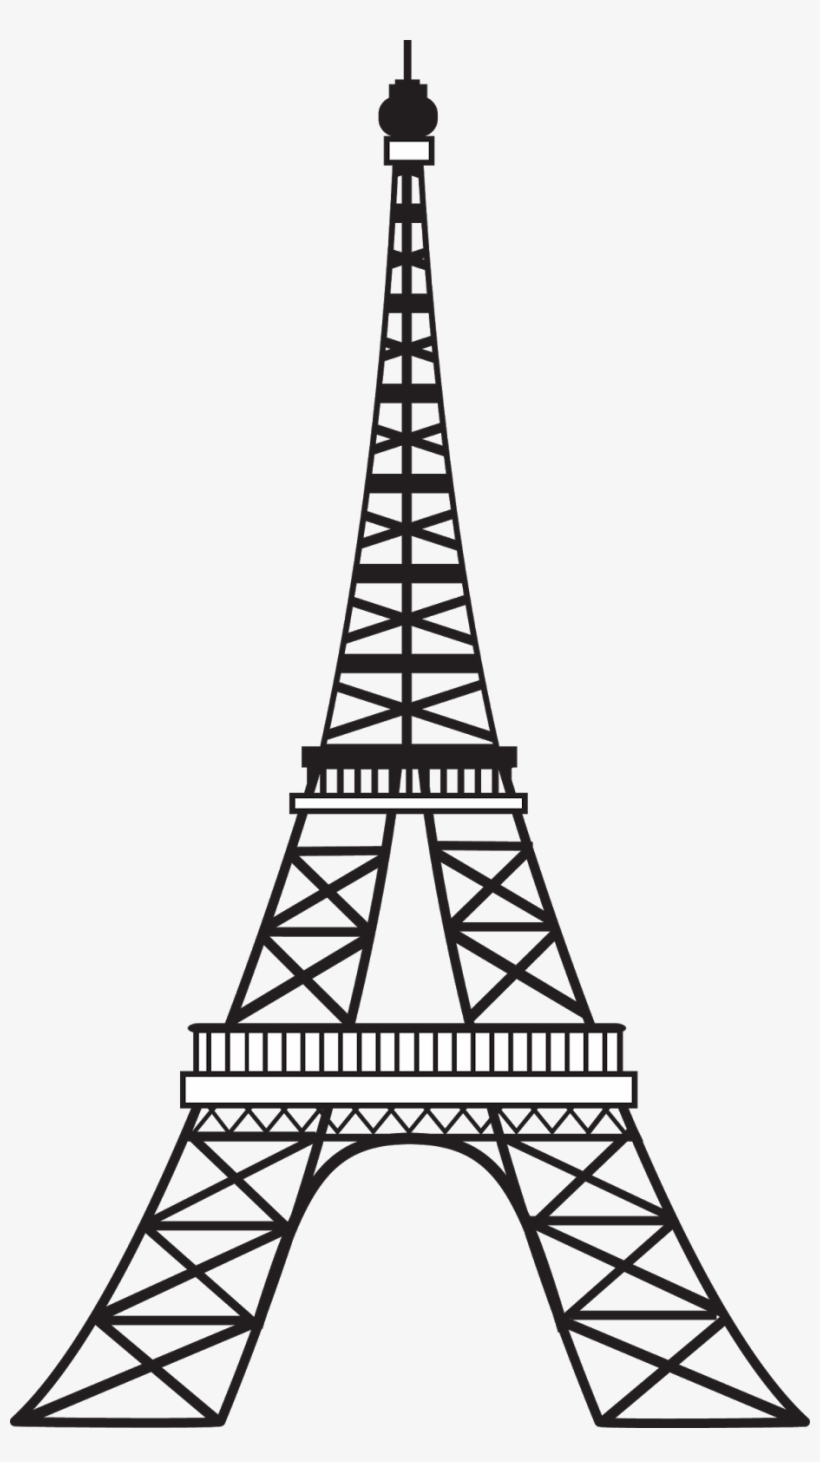 Free Eiffel Tower Png Transparent Image.